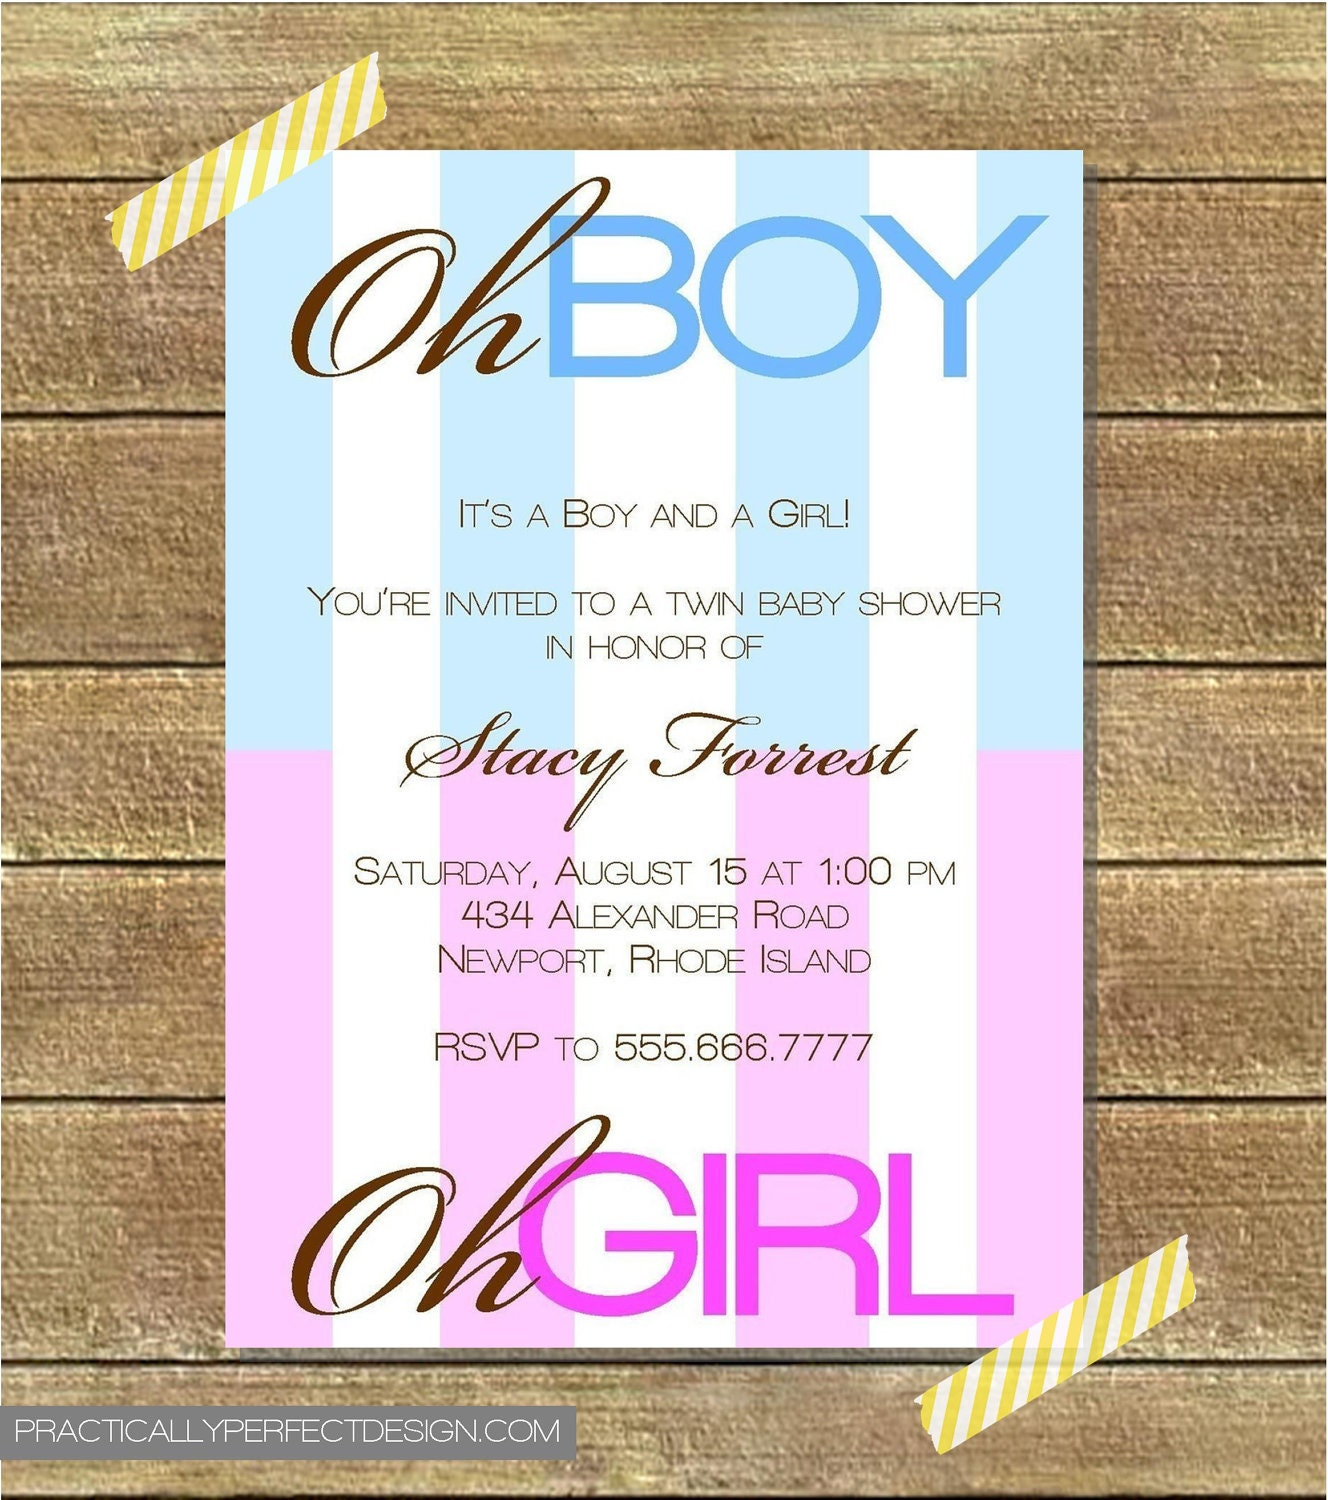 twin baby shower invitation boy and girl by gabriellekearney twin baby